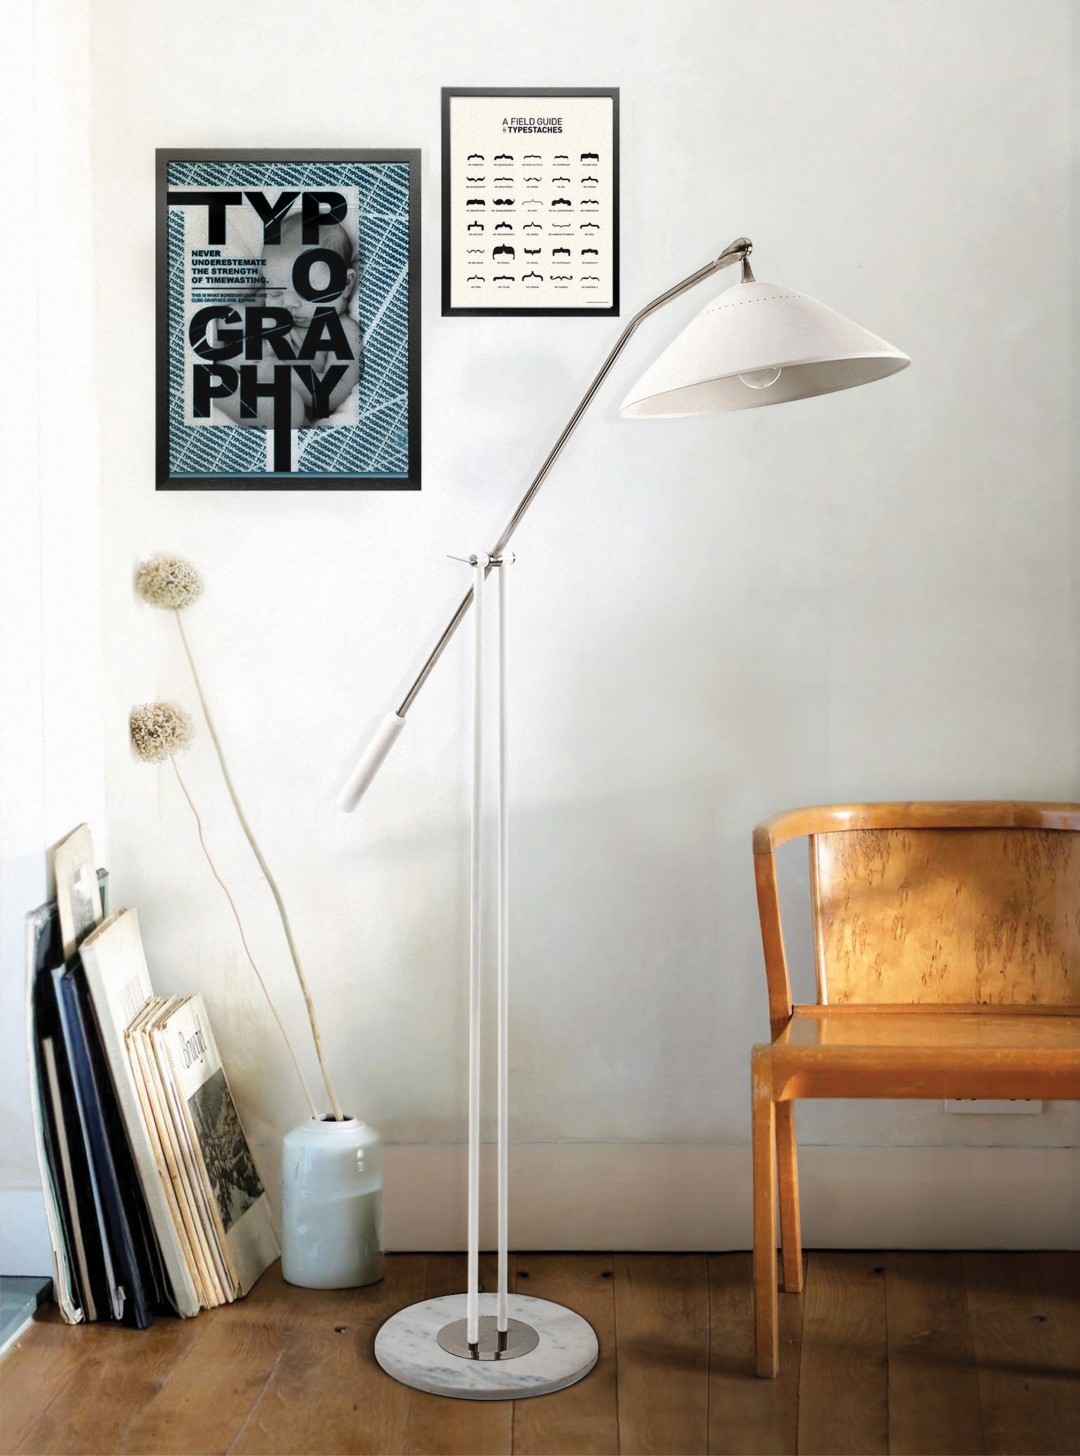 floor samples floor samples Floor Samplea Gives You Back To School Floor Lamp Décor! Back To SchoOL Basics With The Help Of Floor Samples1